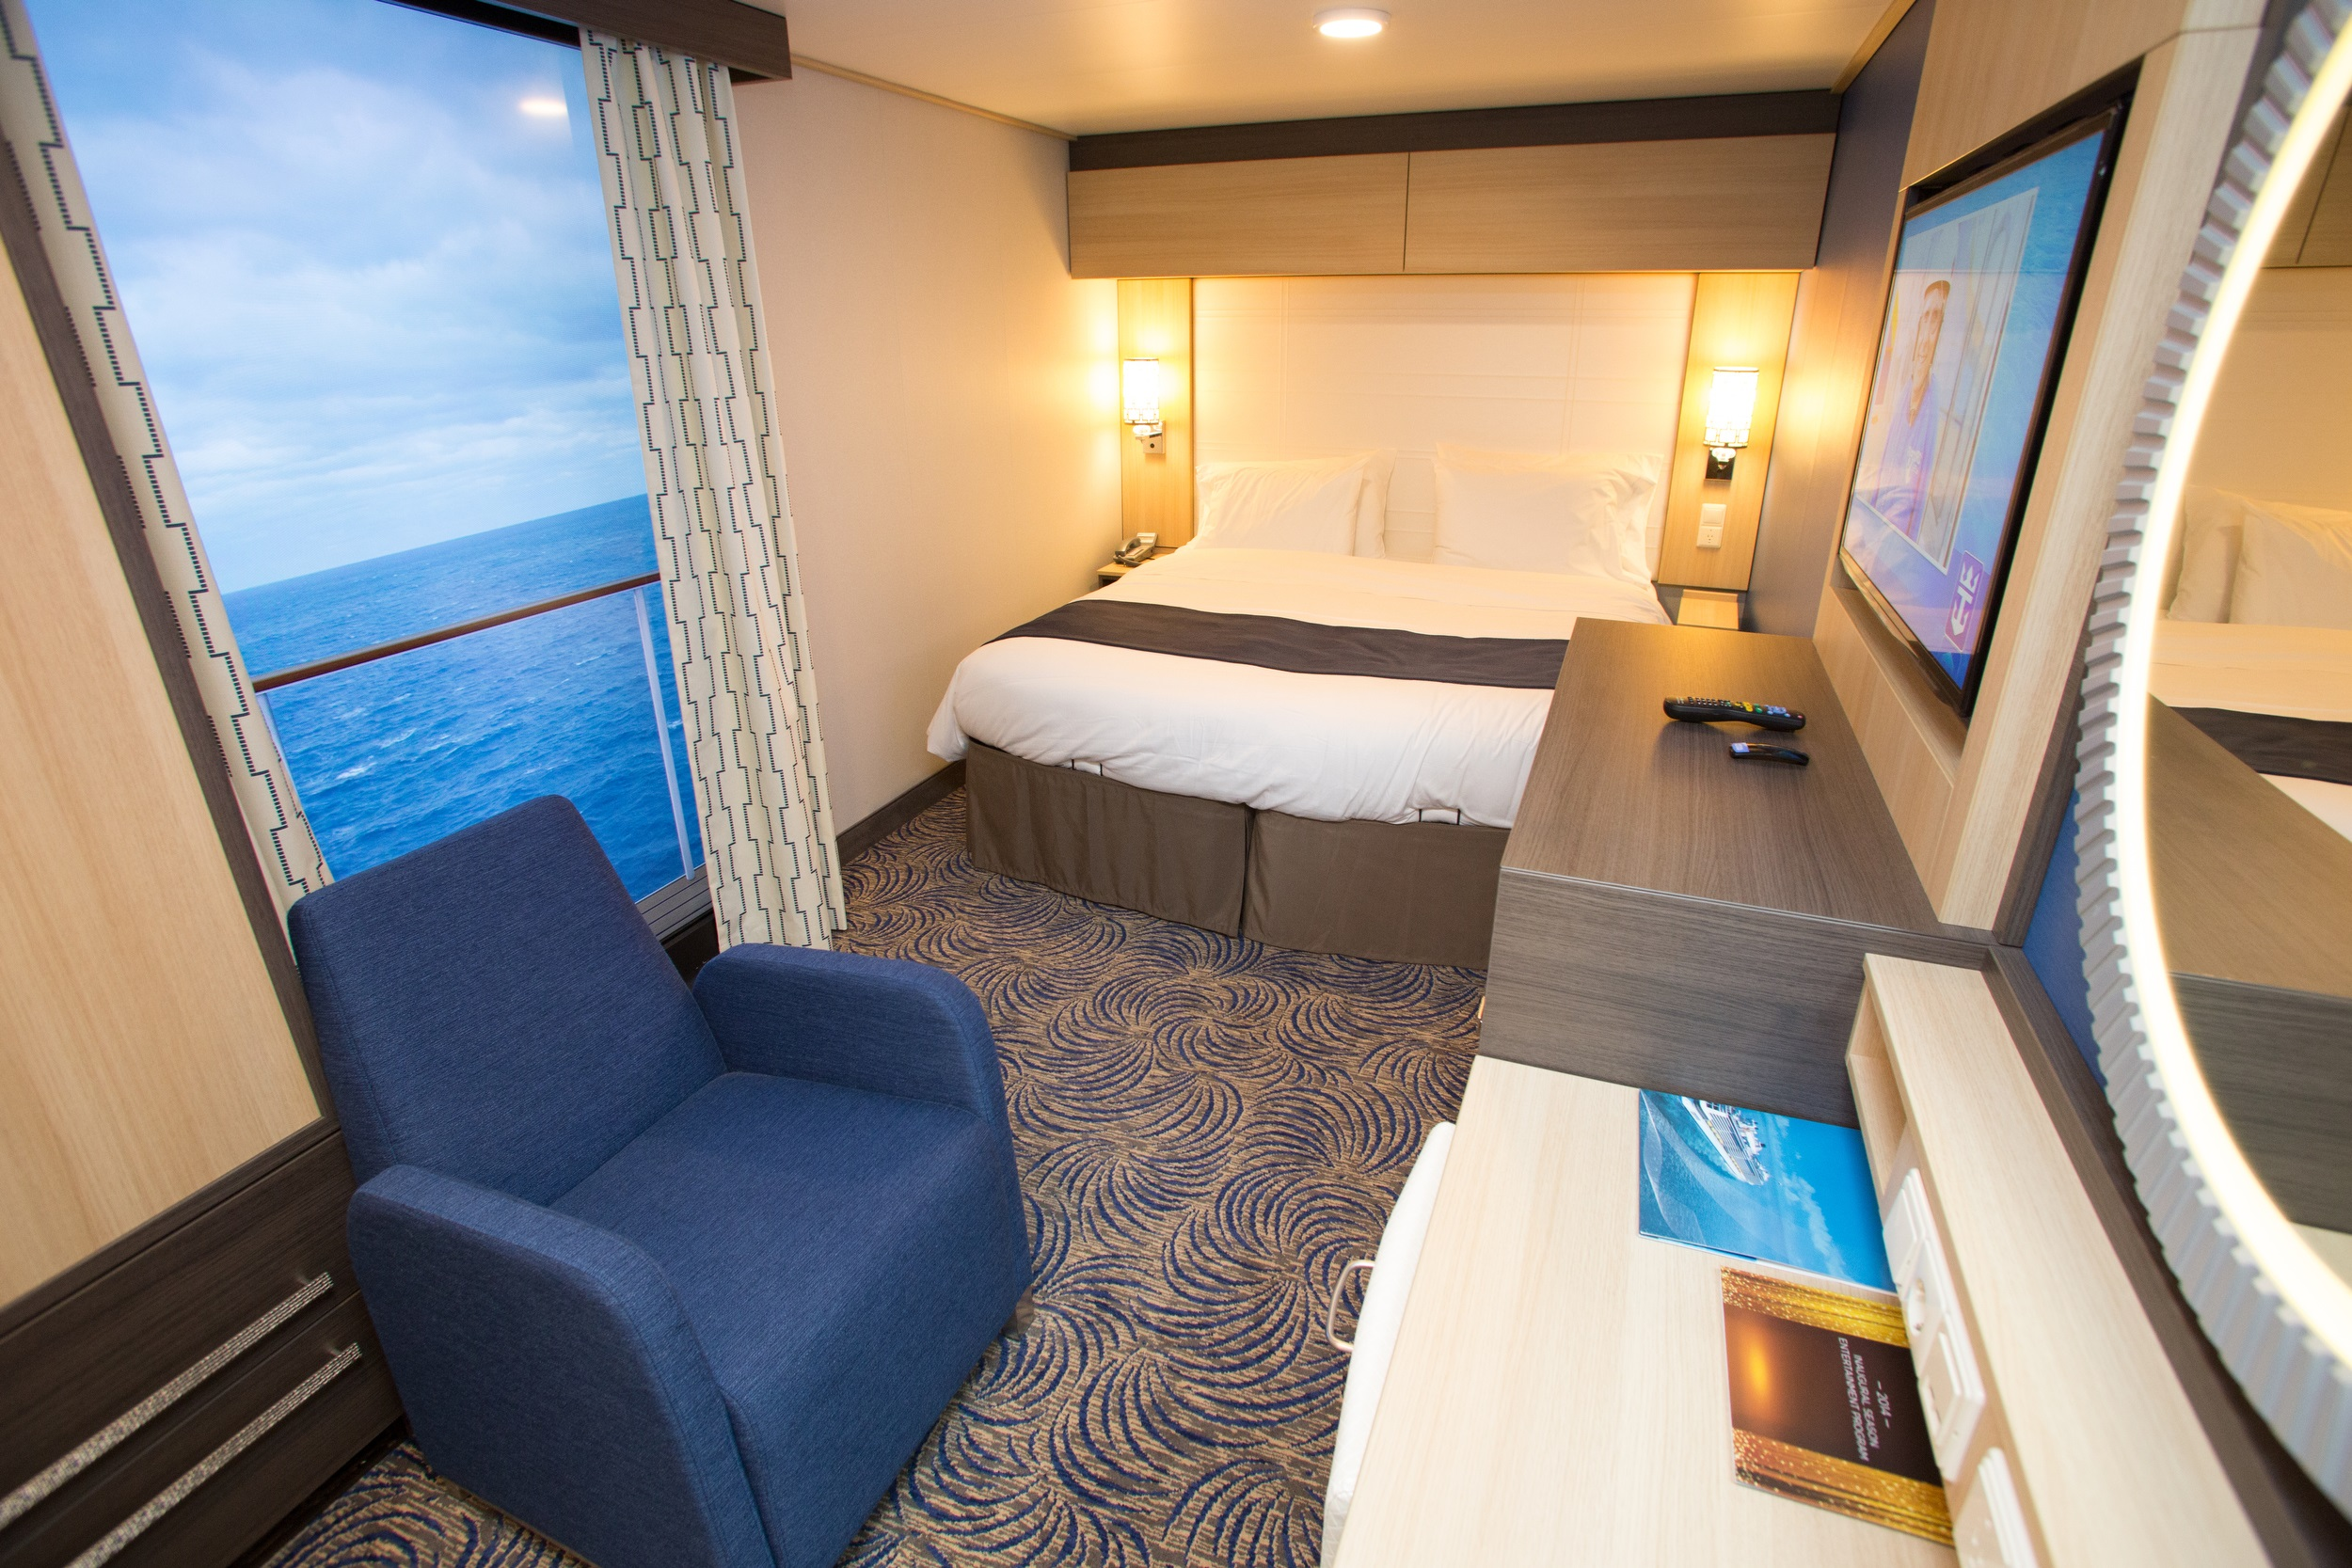 What Is A U201cGuaranteeu201d (GTY) Stateroom Or Cabin On A Cruise?